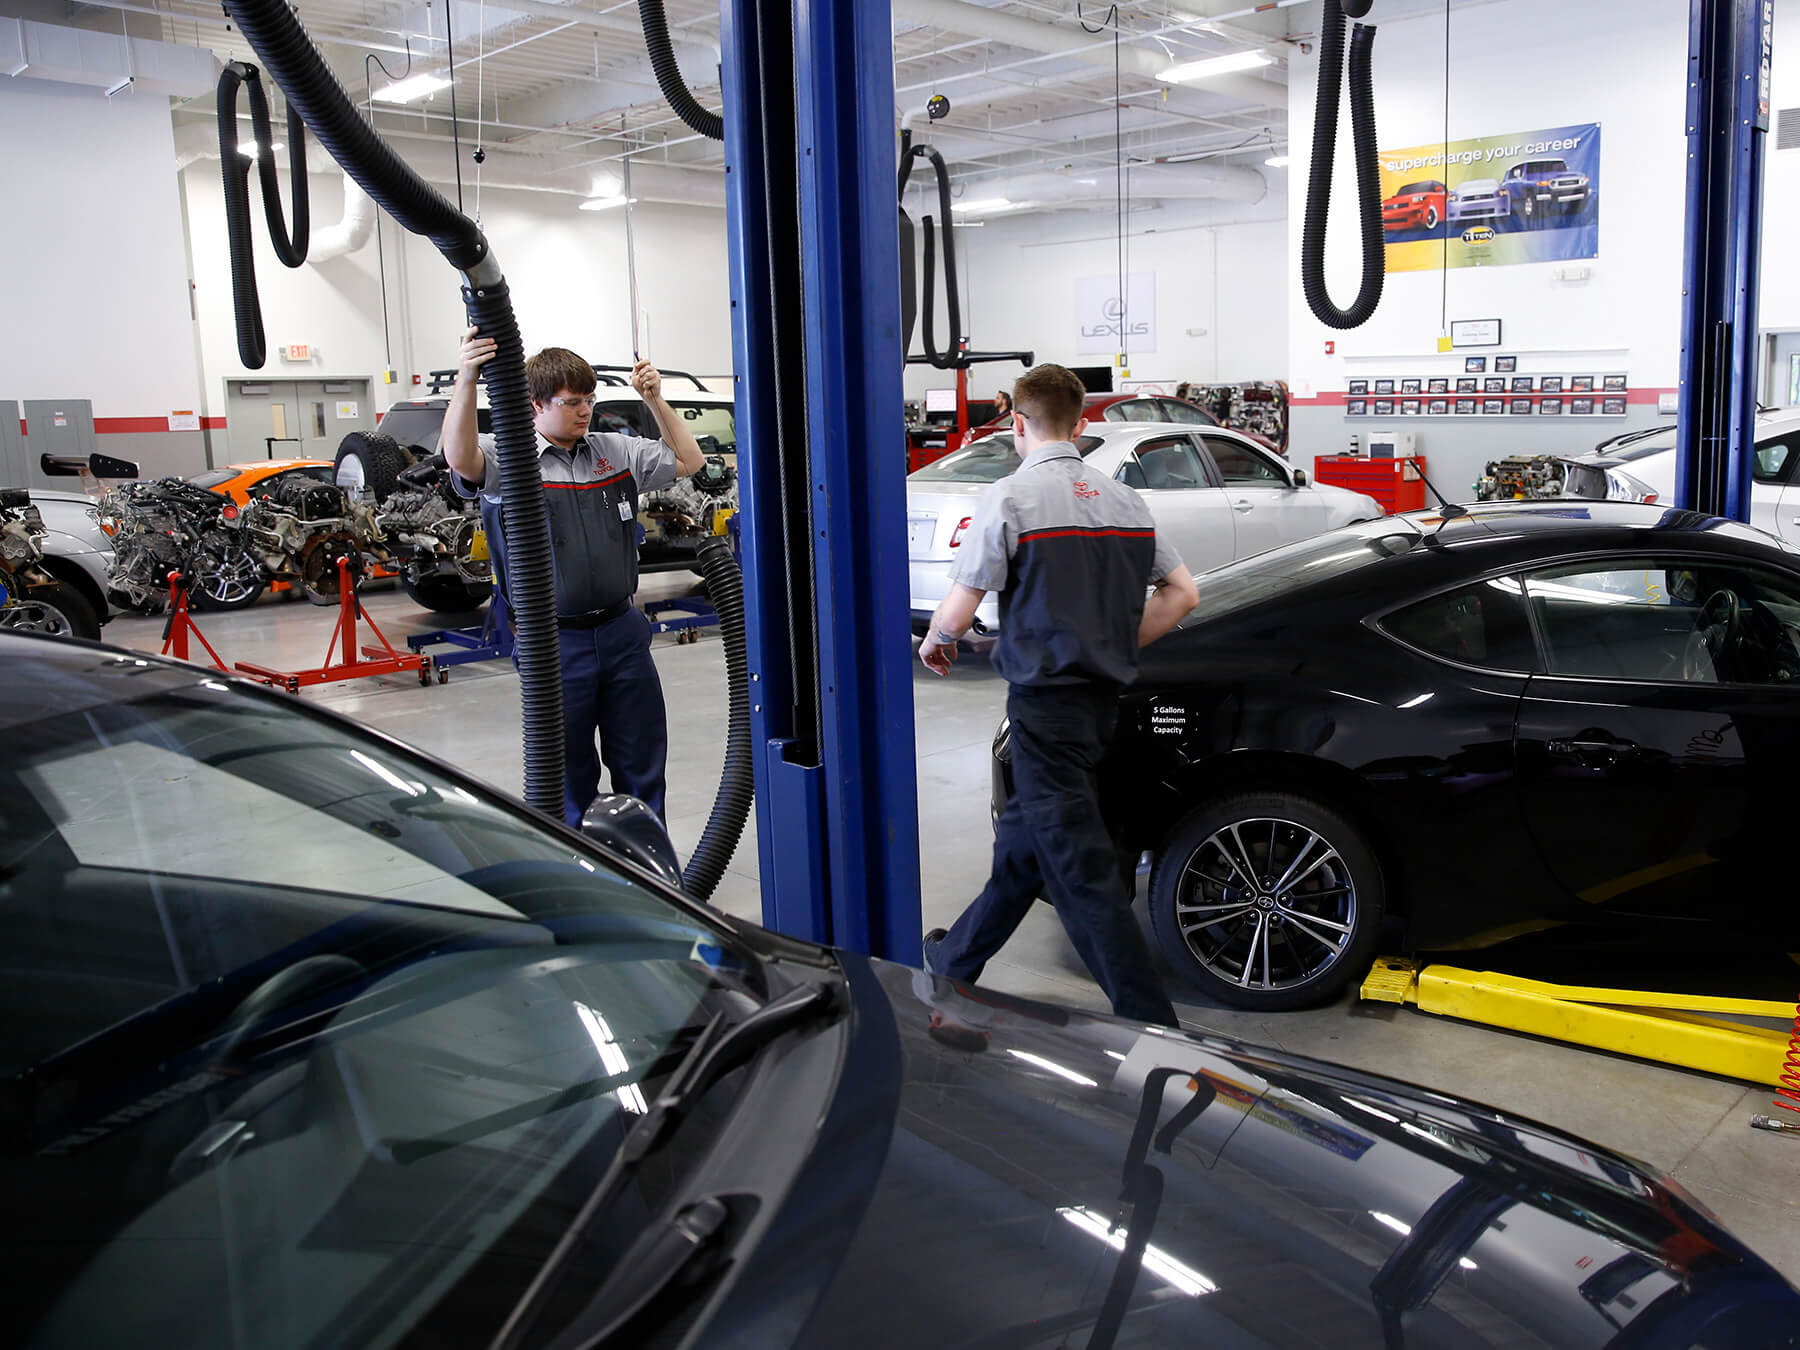 UTI students working in the Toyota auto lab